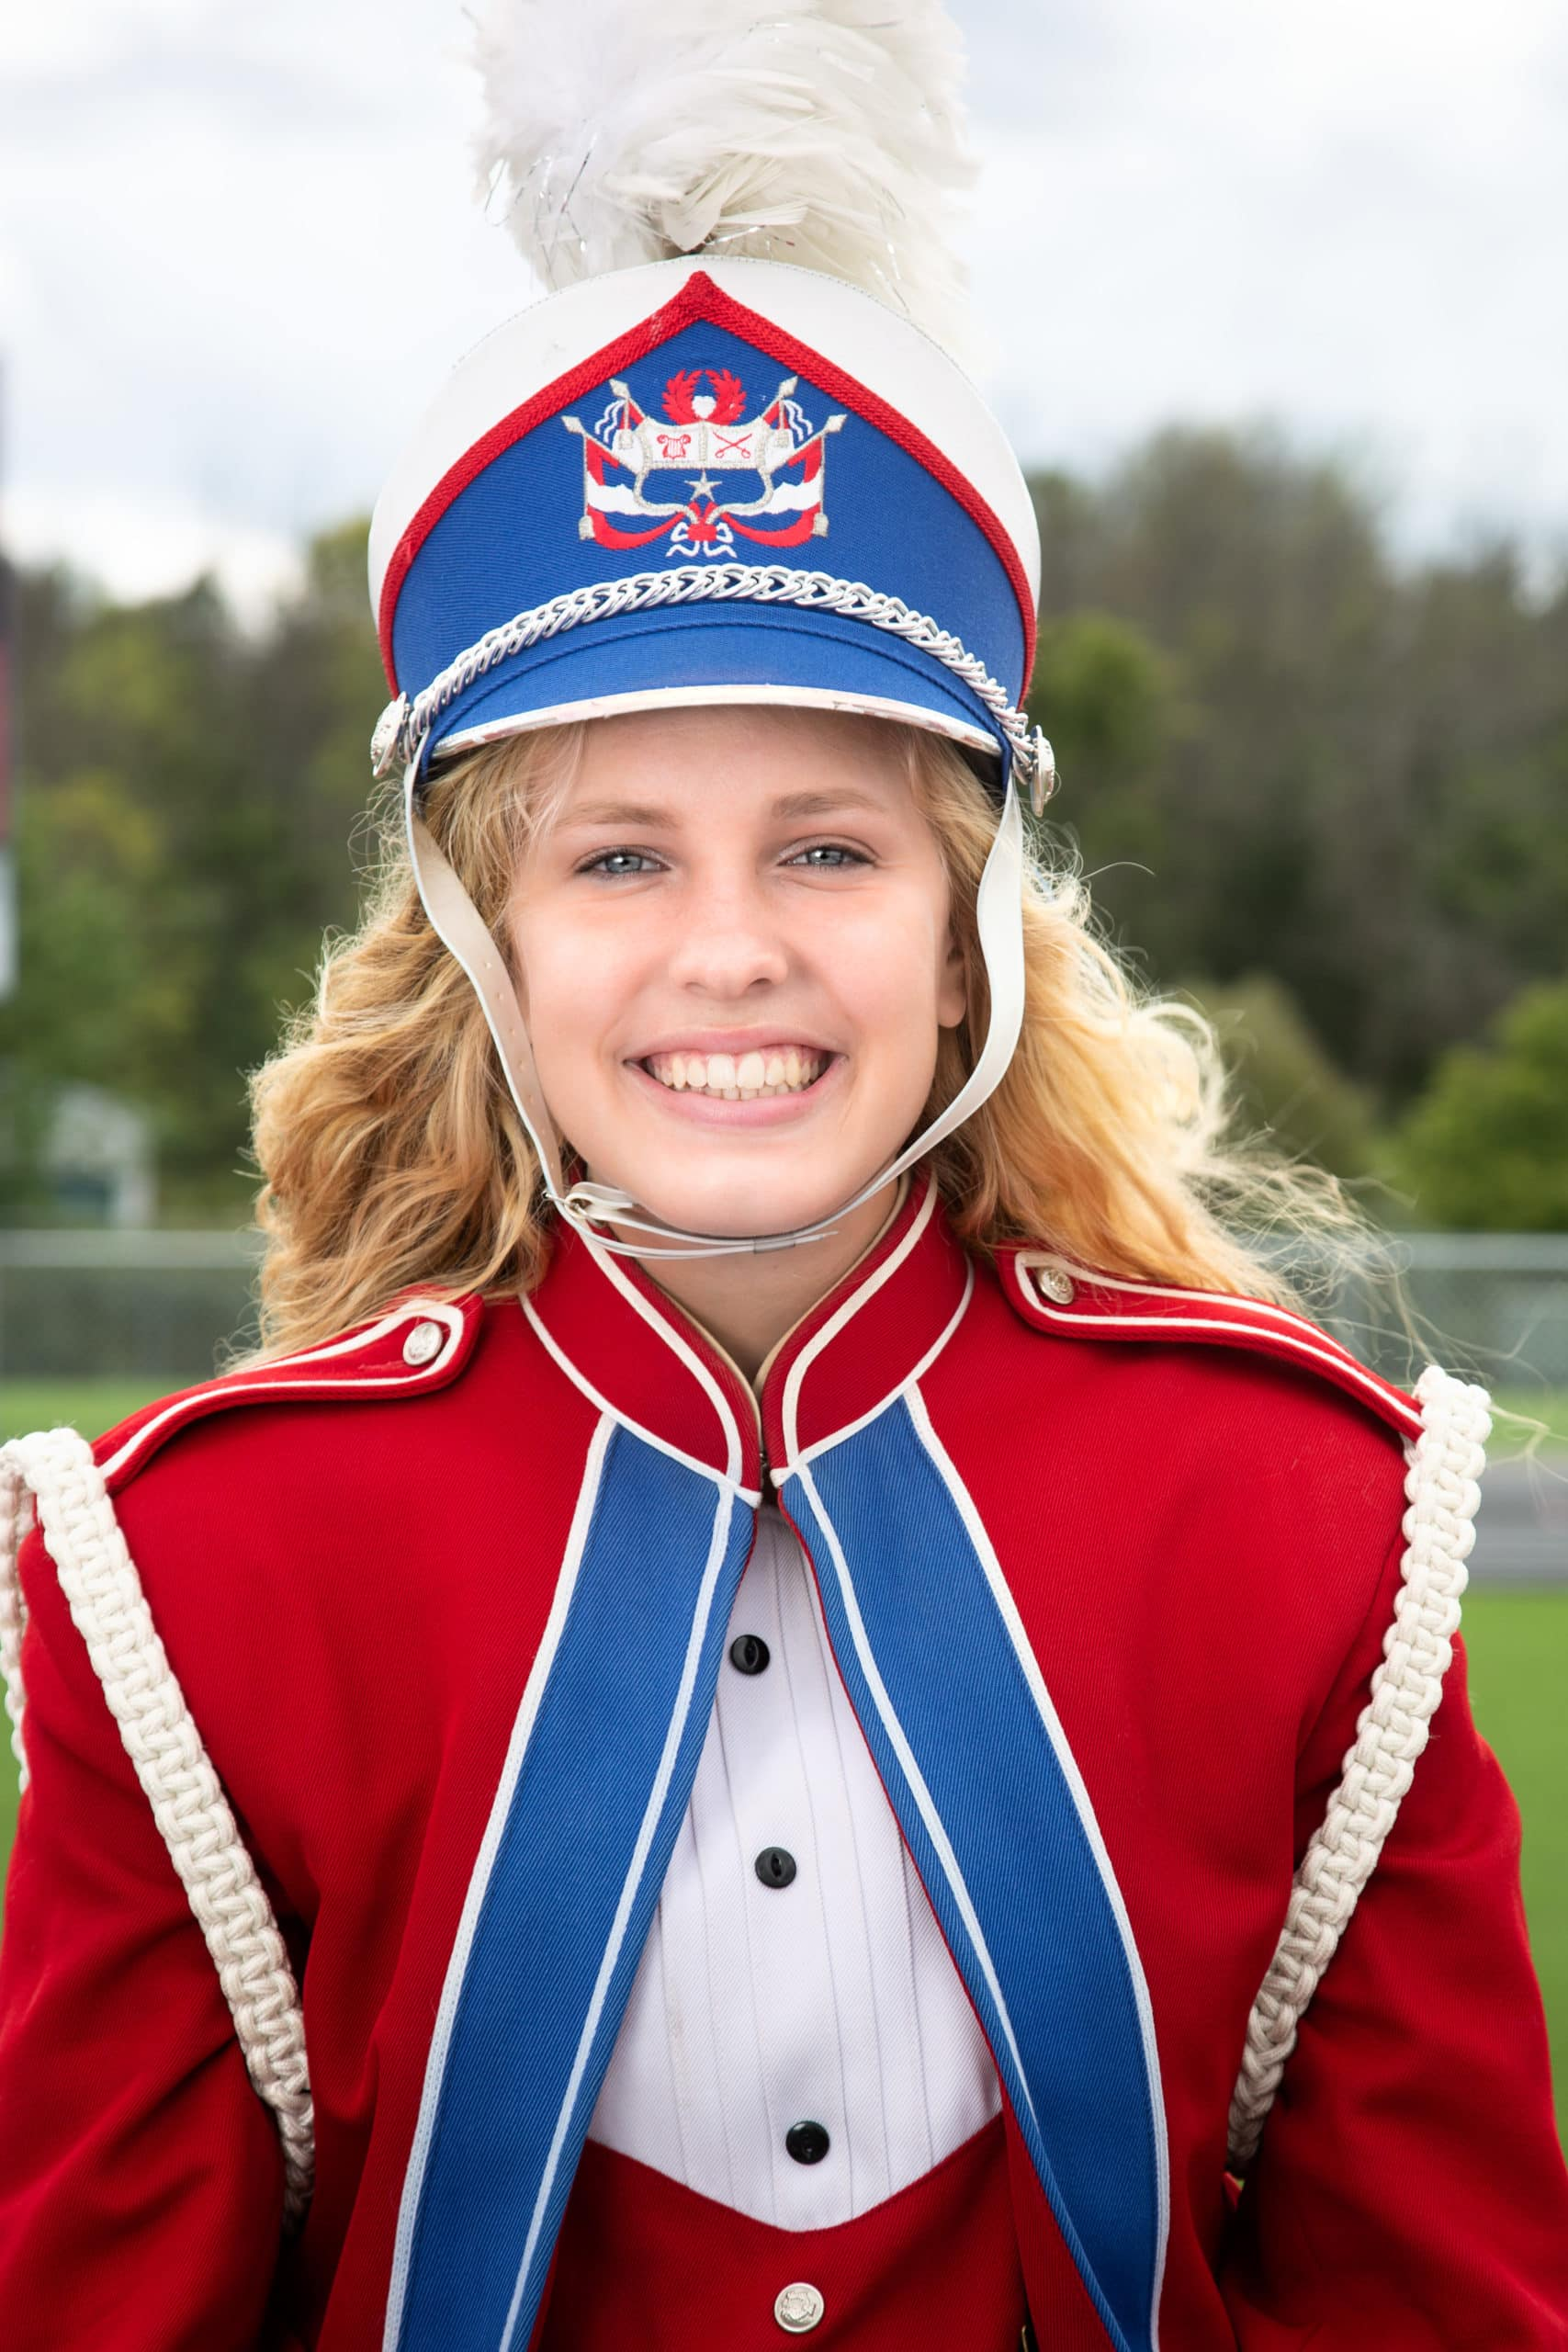 Sophie in her band uniform